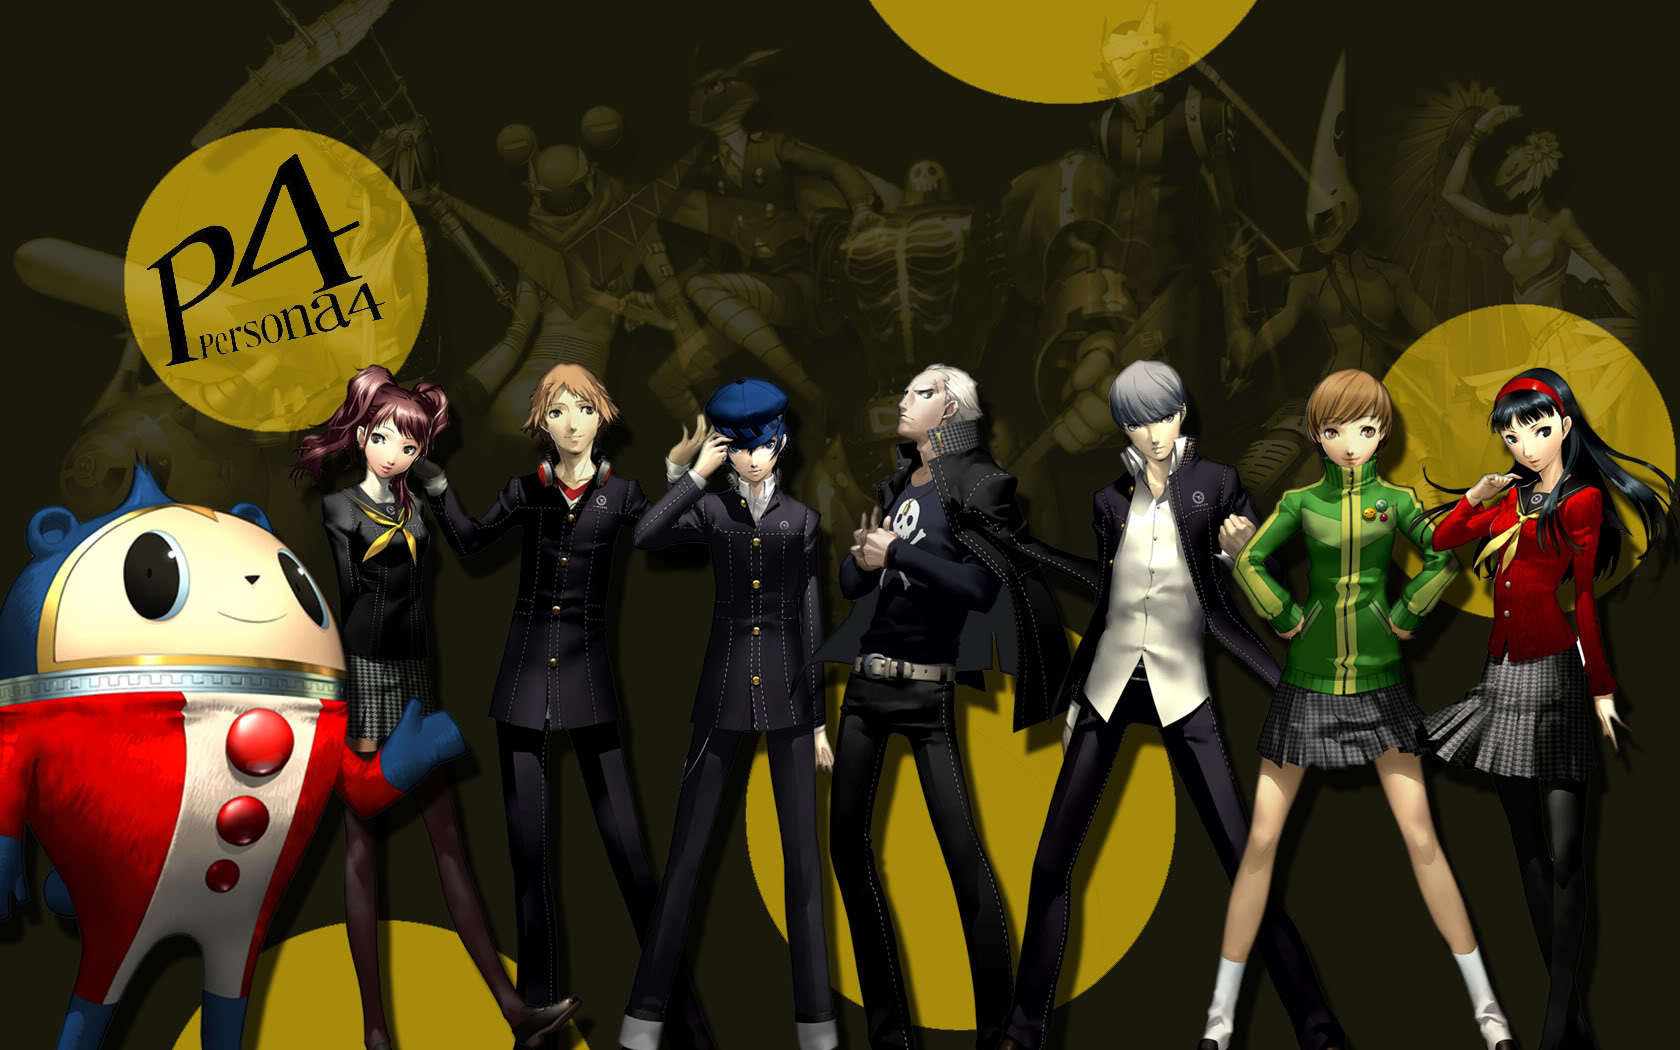 I Just Put The 壁紙 I Have P Persona 4 The Anime The